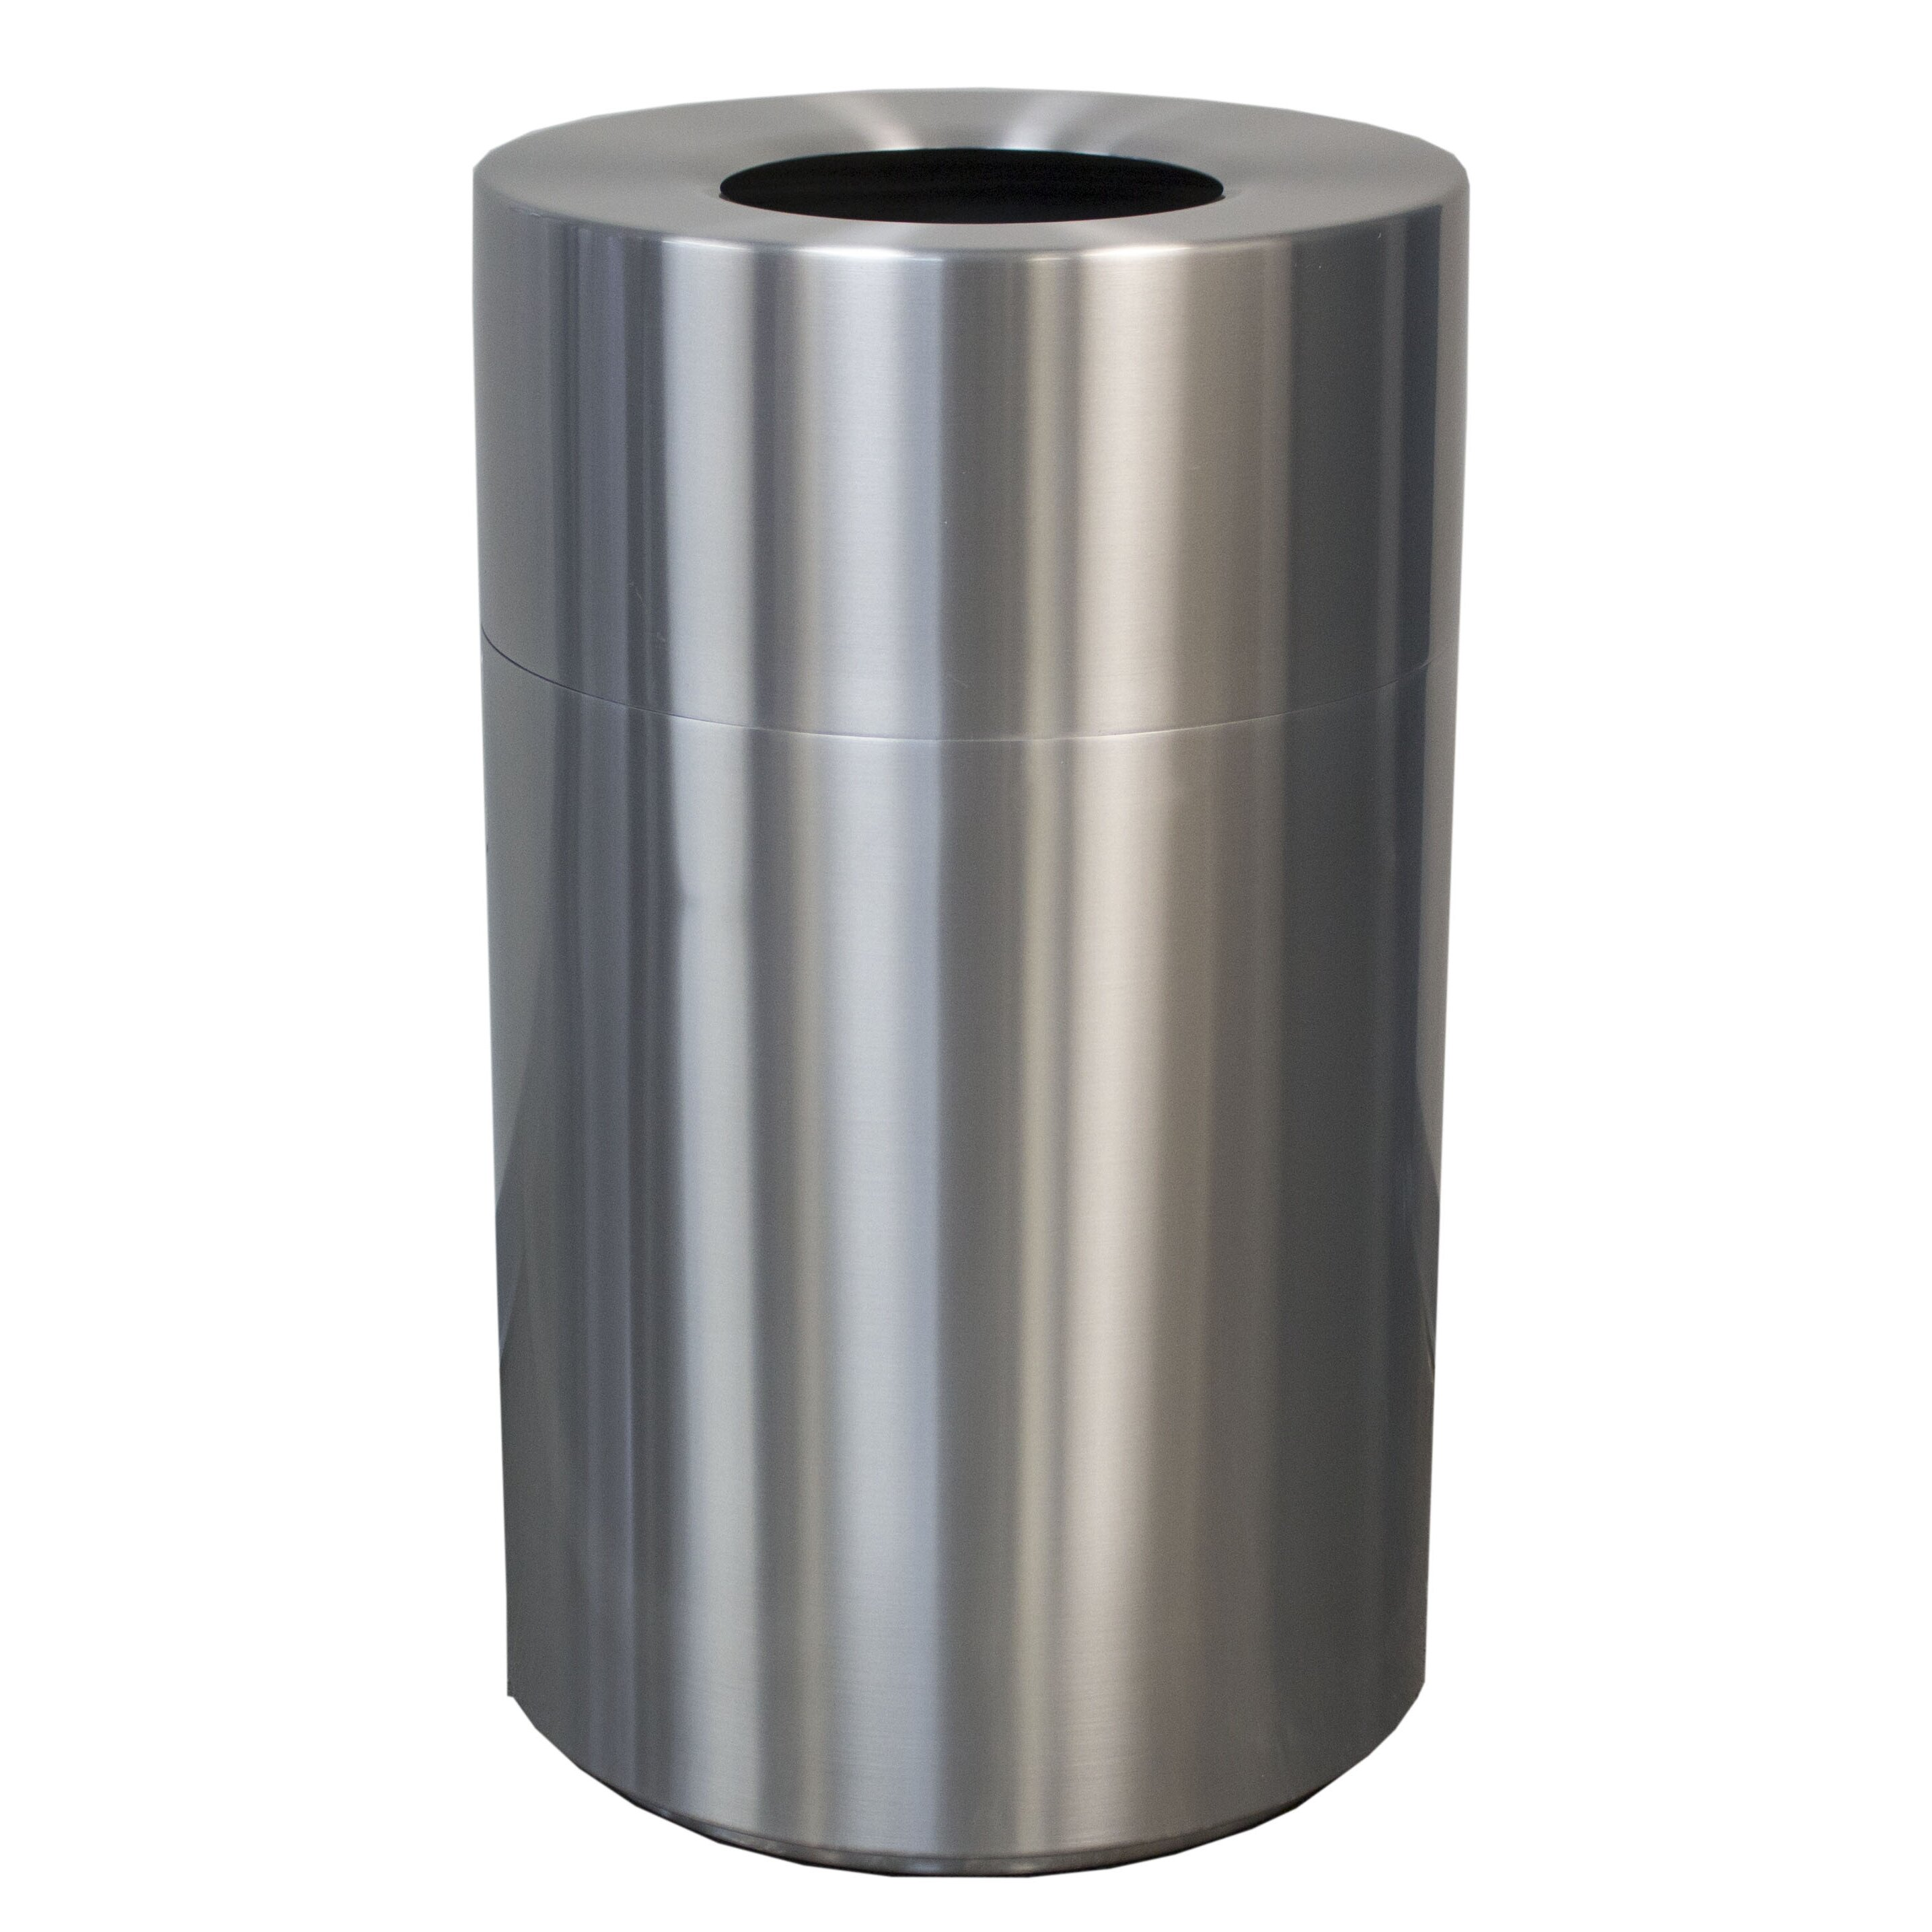 Aluminium Garbage Cans : Witt aluminum series gallon manual metal trash can